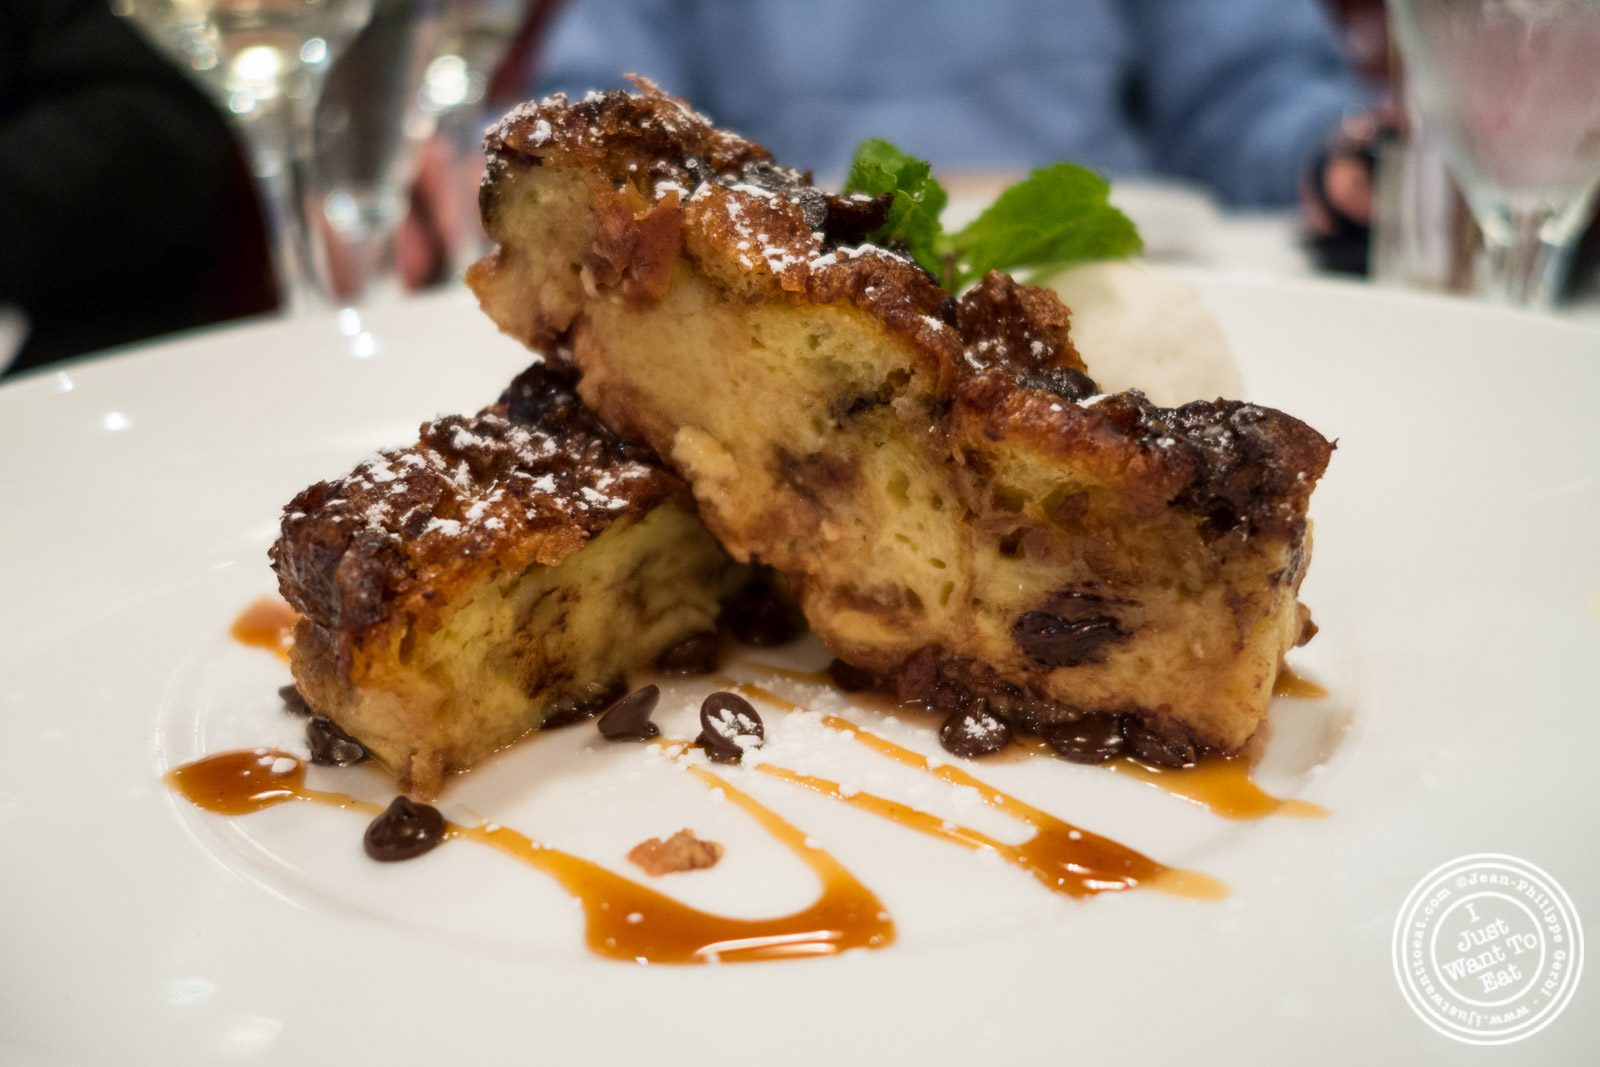 Grand Marnier bread pudding at Rue 57 in NYC, New York